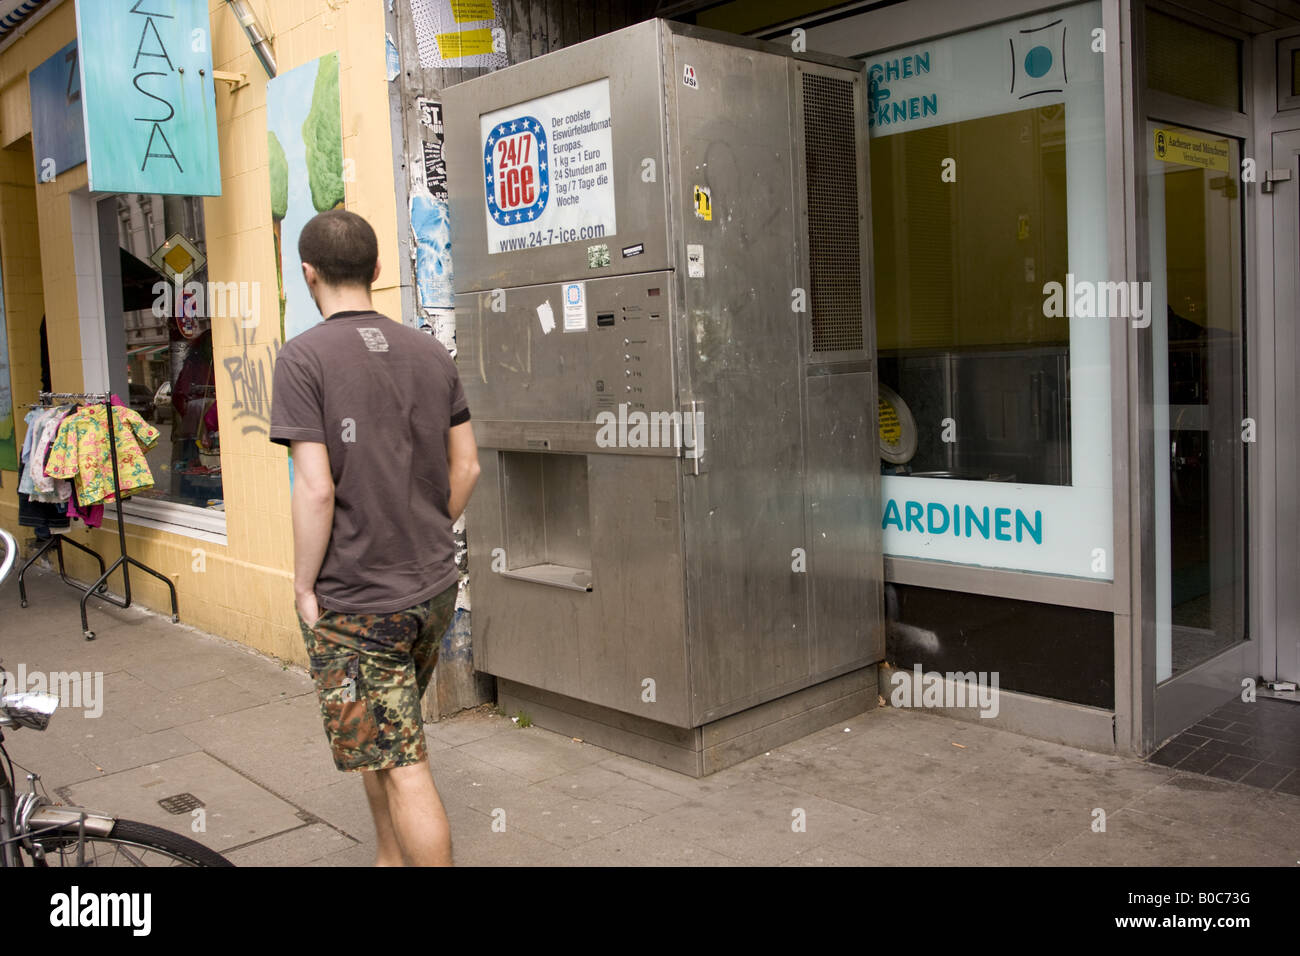 May 2008, A man walks past a machine selling crushed ice, Hamburg, Germany - Stock Image